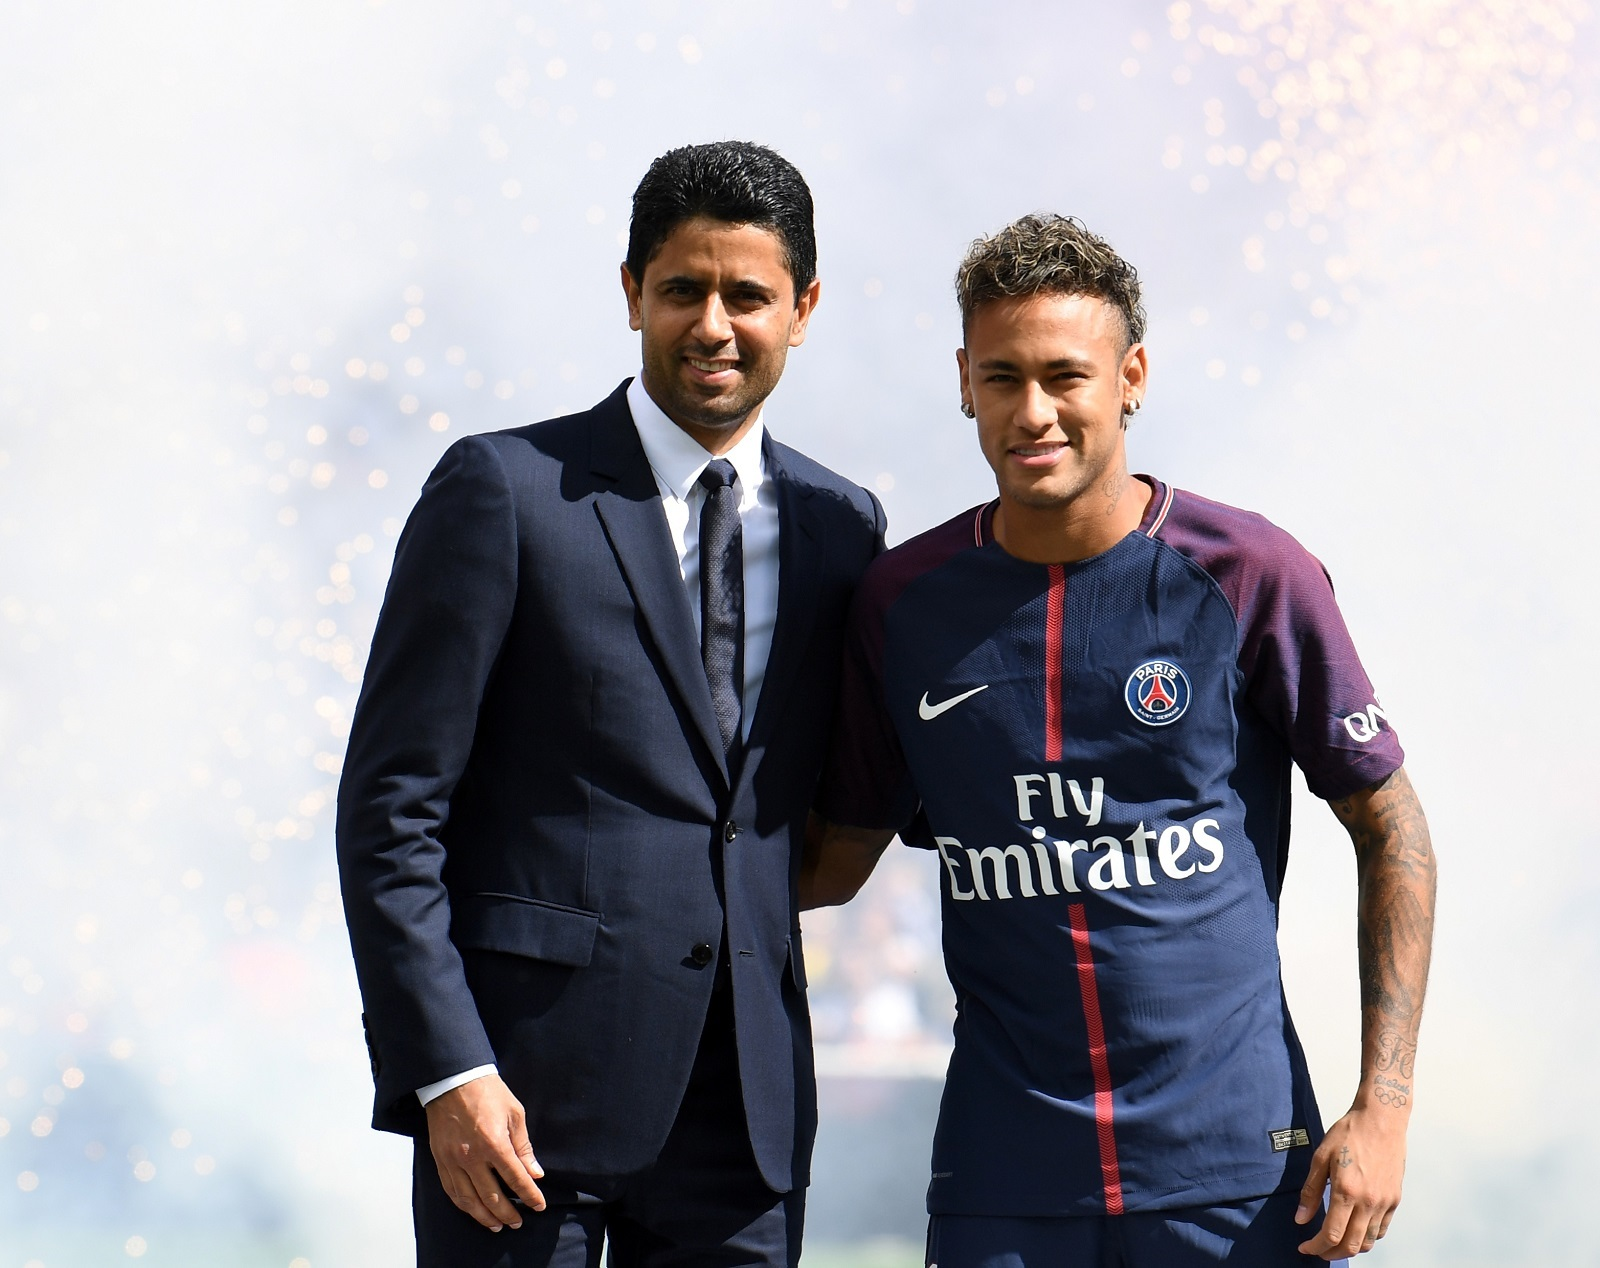 mercato  comment faire en sorte que le psg arr u00eate de surpayer ses recrues